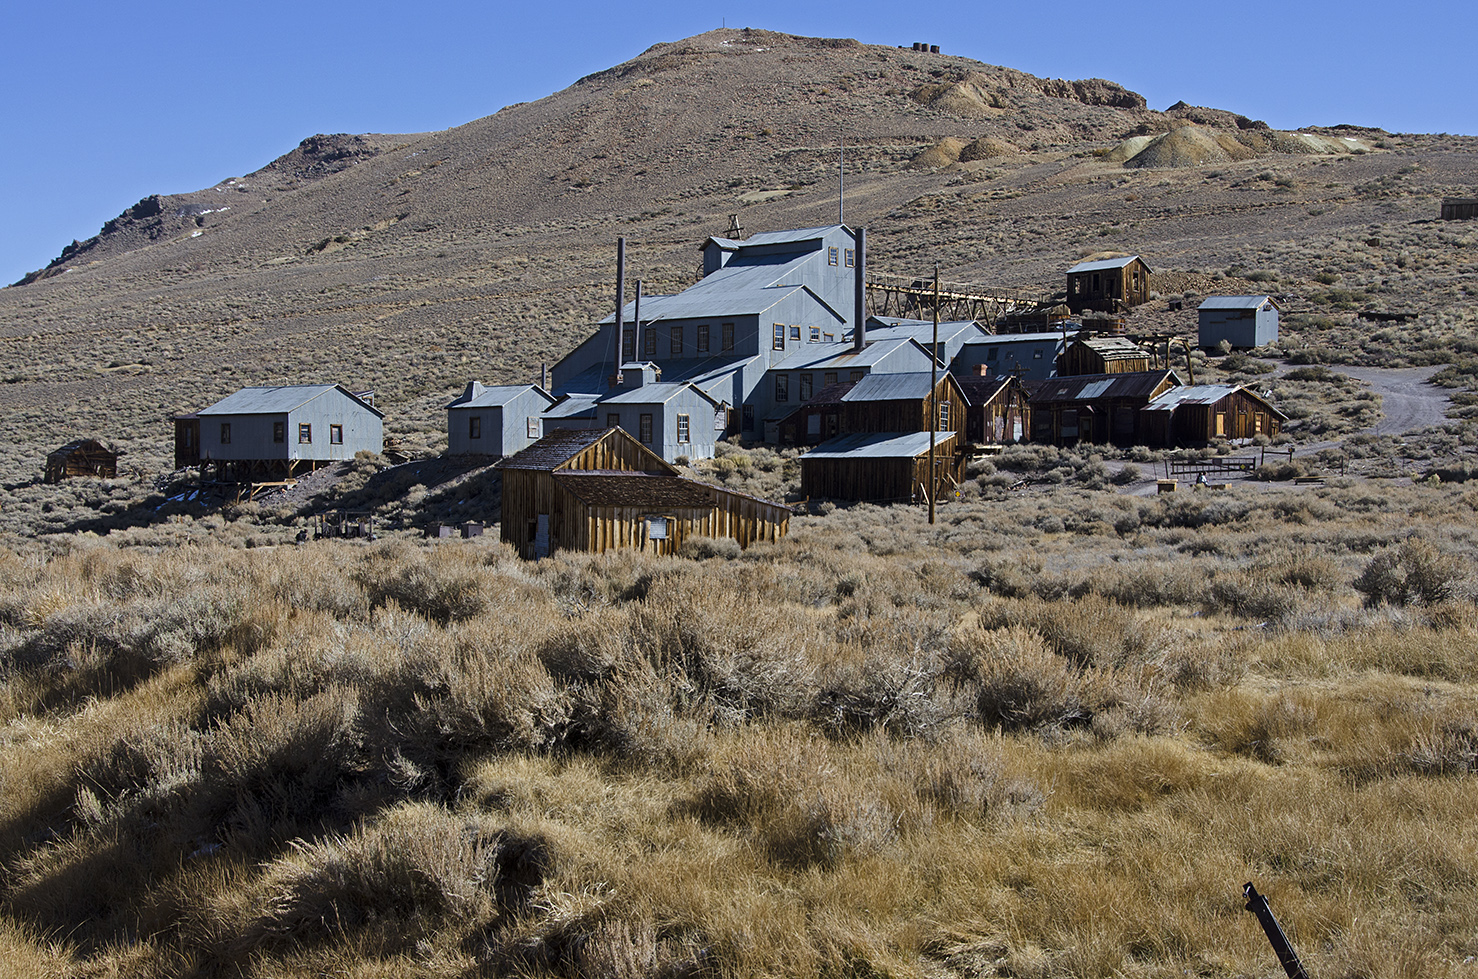 The Standard Mine and Mill are located on the west slope of Bodie Bluff. The mine was known as the Bunker Hill Mine when it was registered in 1861. The mill last operated in 1938. The Standard was the most successful mine in Bodie.